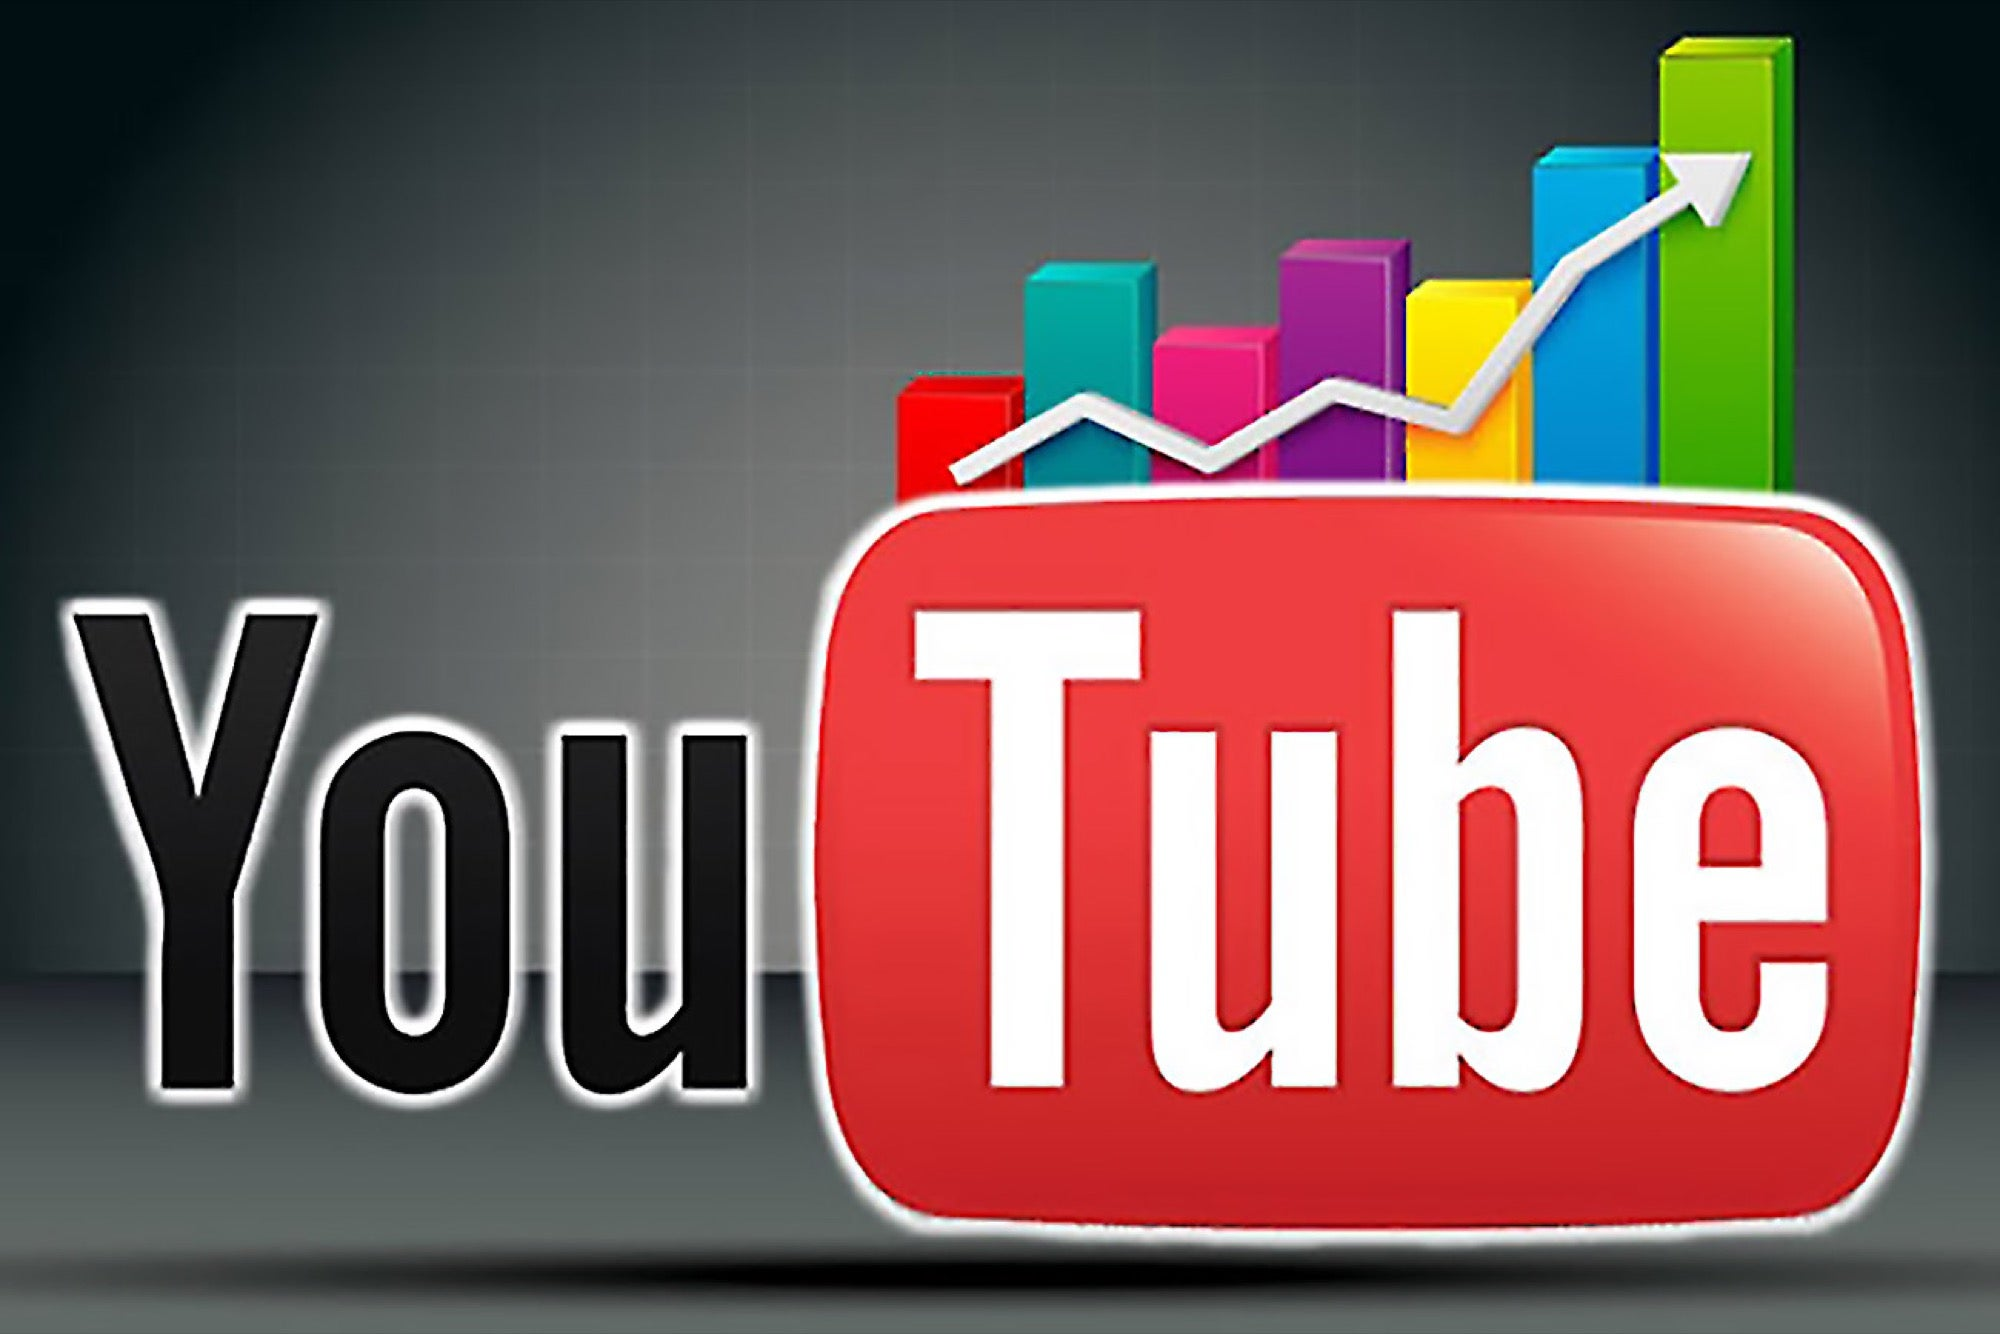 Buy YouTube Watch Hours to Quickly Monetize and Increase your Finances